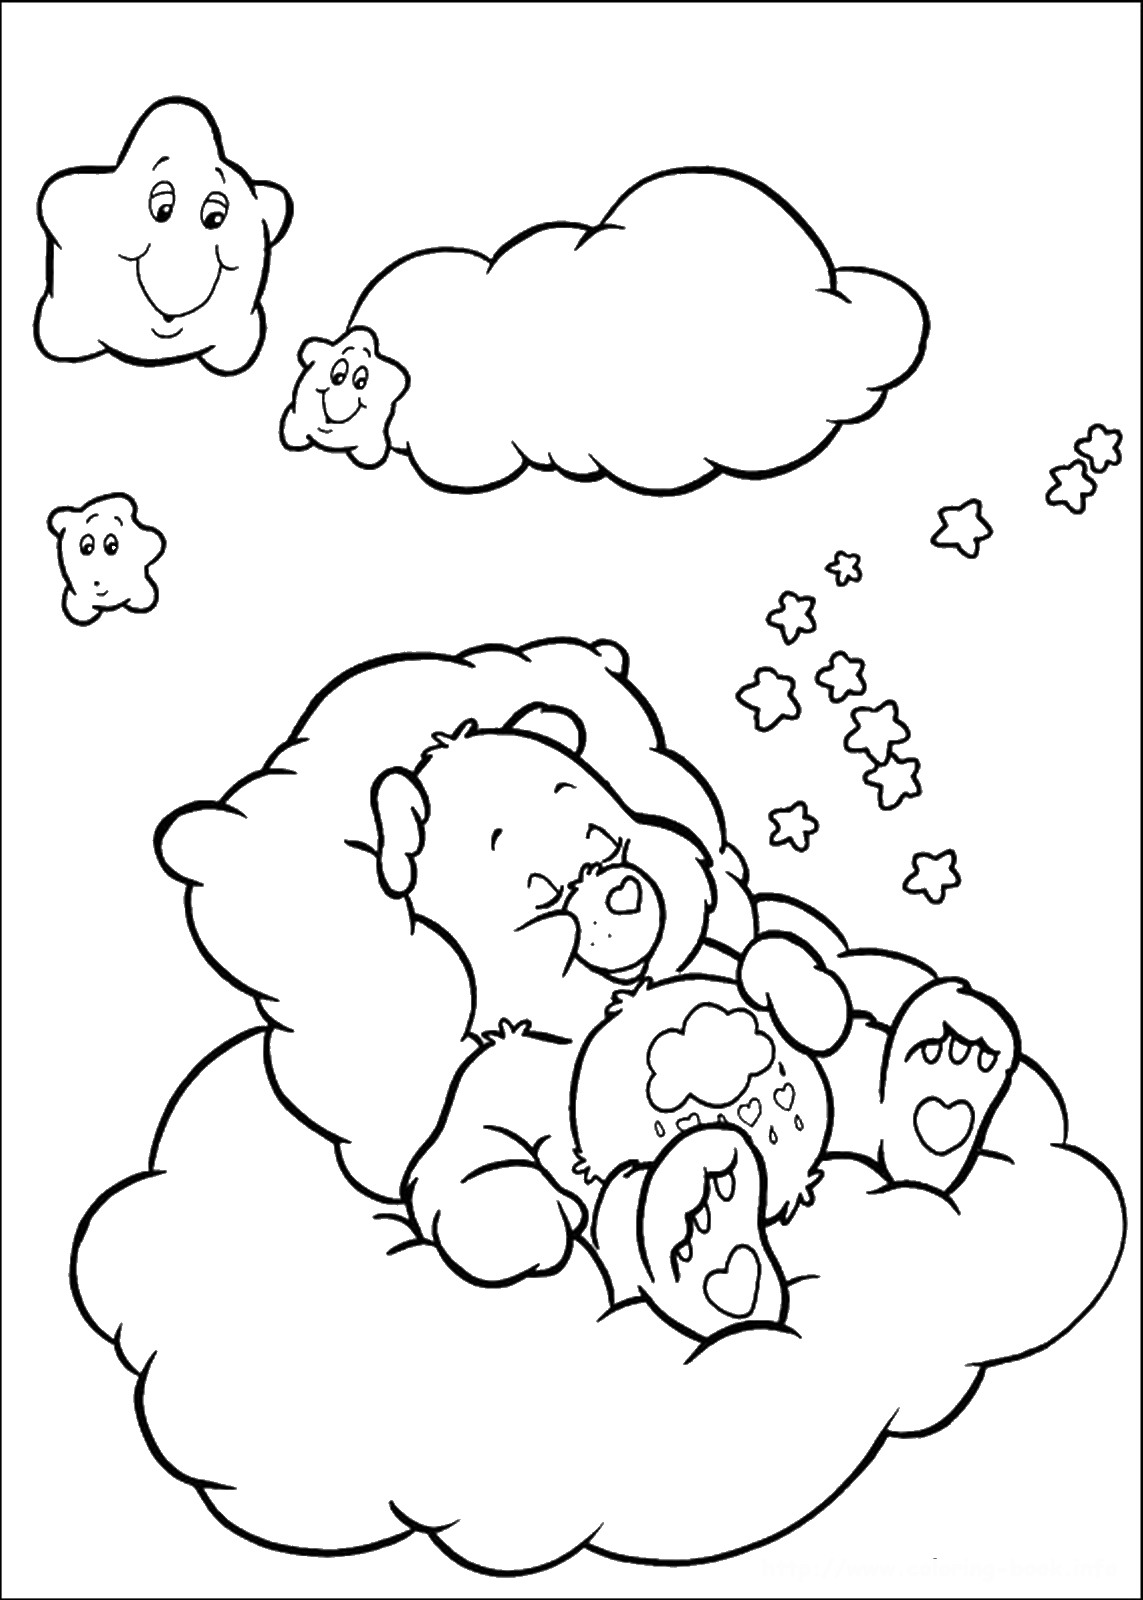 the care bears coloring pages - photo#9